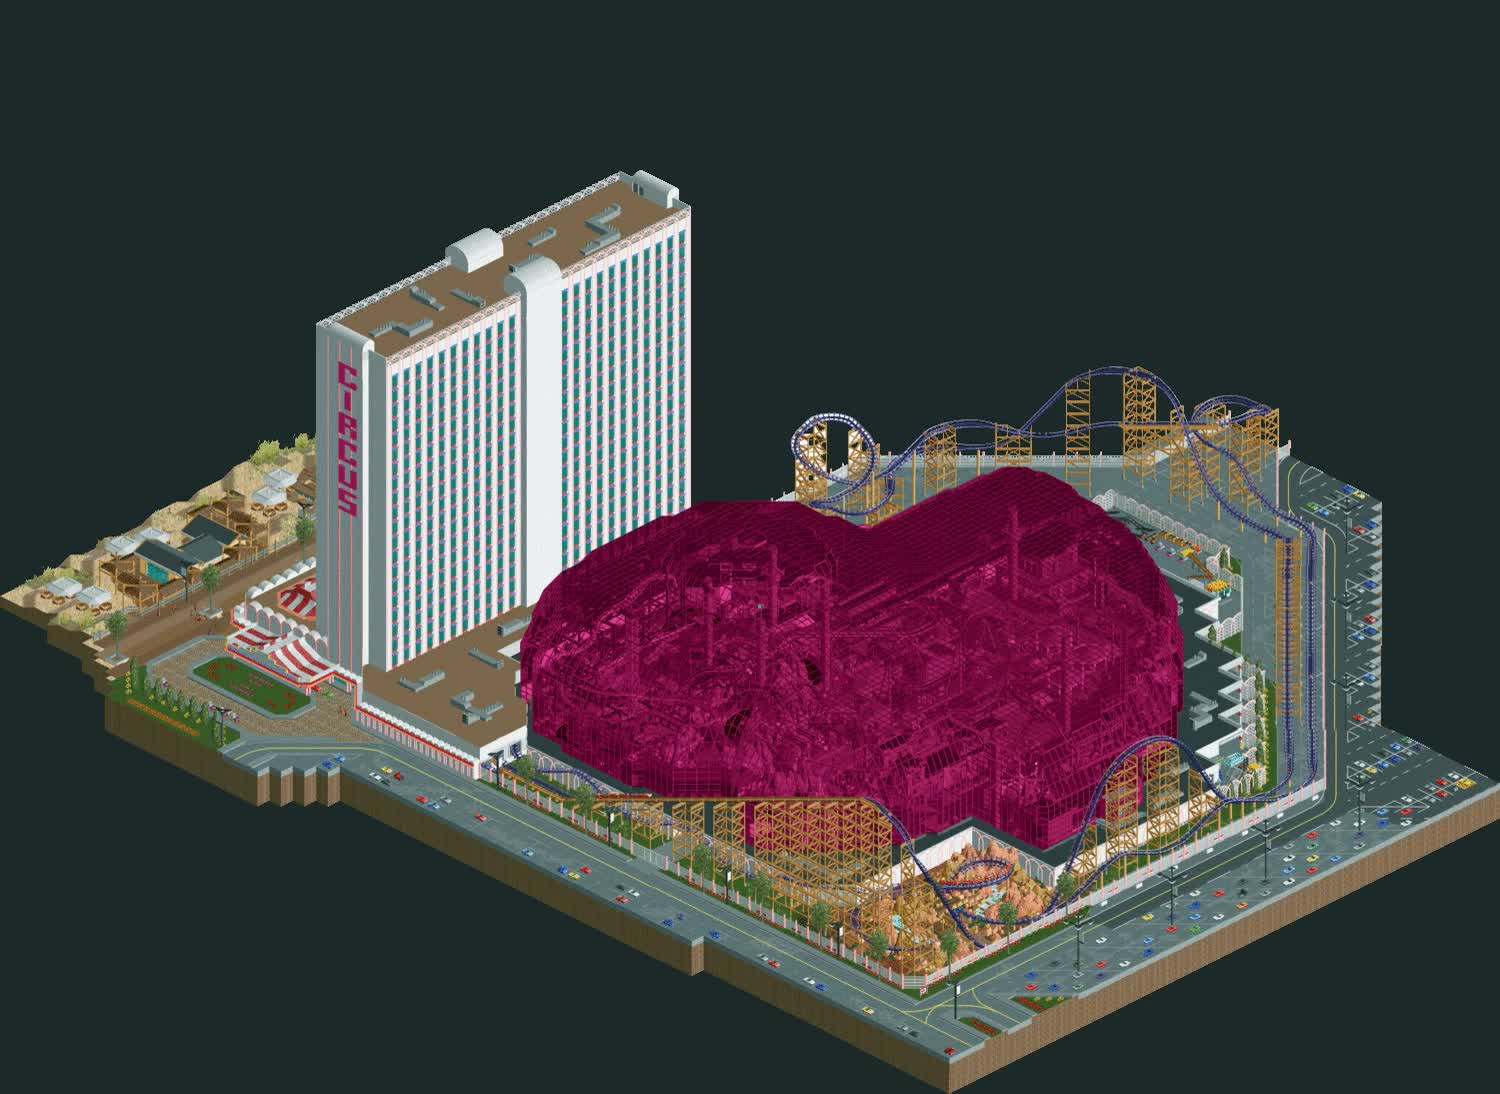 [2] Gif on Manual Laborer's R1 H2H park. : rct GIFs